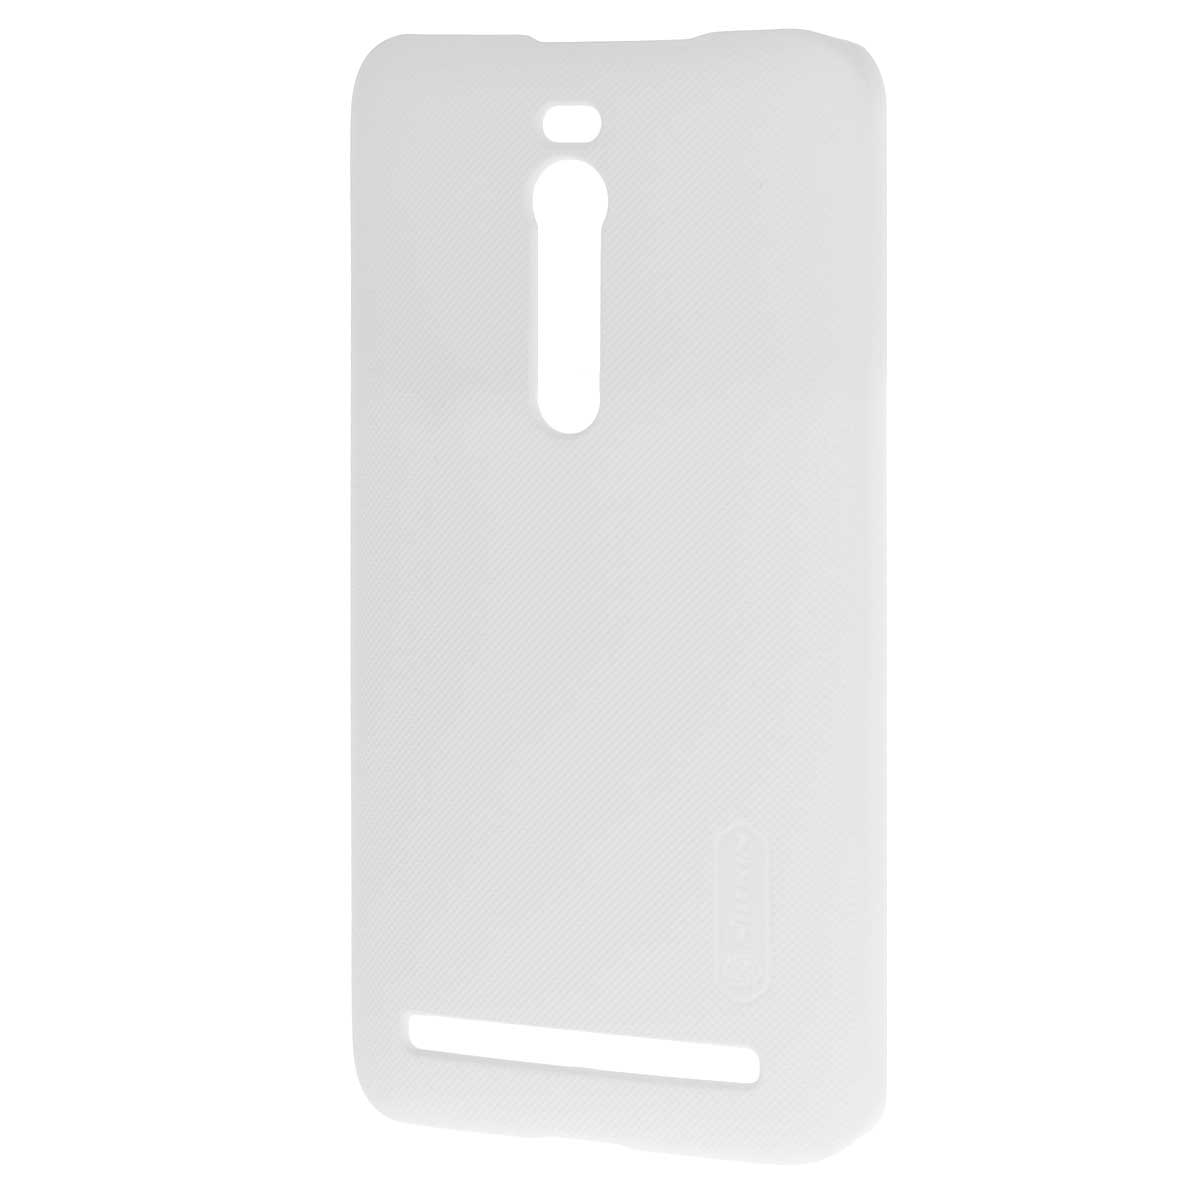 все цены на Nillkin Super Frosted Shield чехол для Asus ZenFone 2 (ZE551ML/ZE550ML), White онлайн